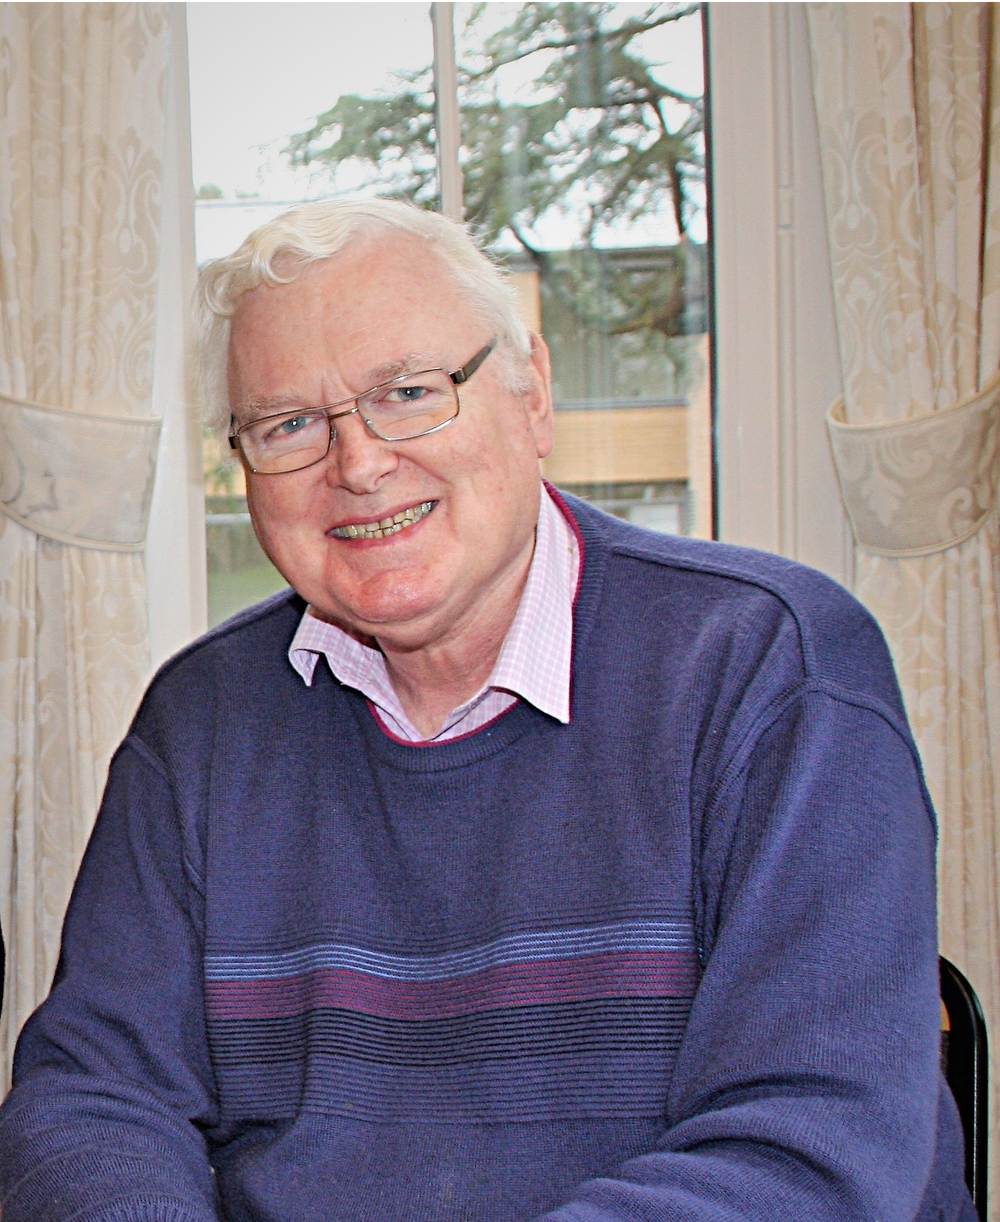 Fr Peter Hughes is the Regional Director of the Columban Missionary Society in Britain.